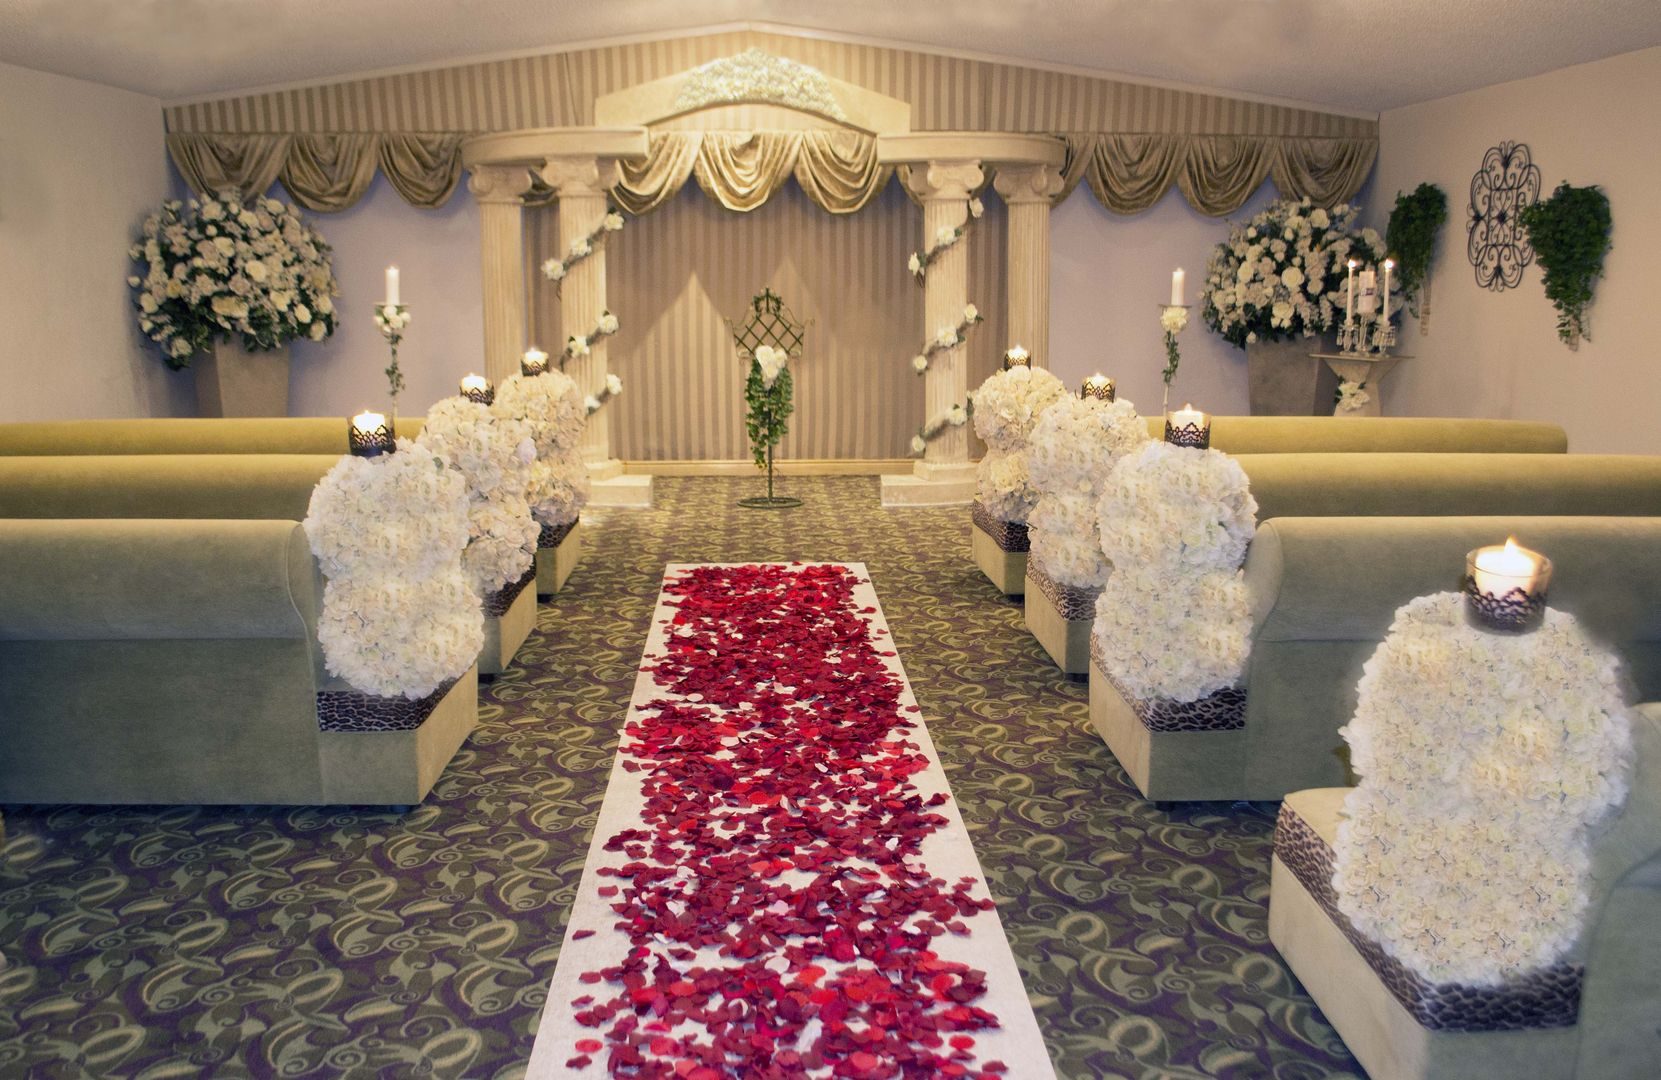 Belleza Wedding Chapel Las Vegas Is One Of The Most Romantic Chapels In Valley Offers Affordable